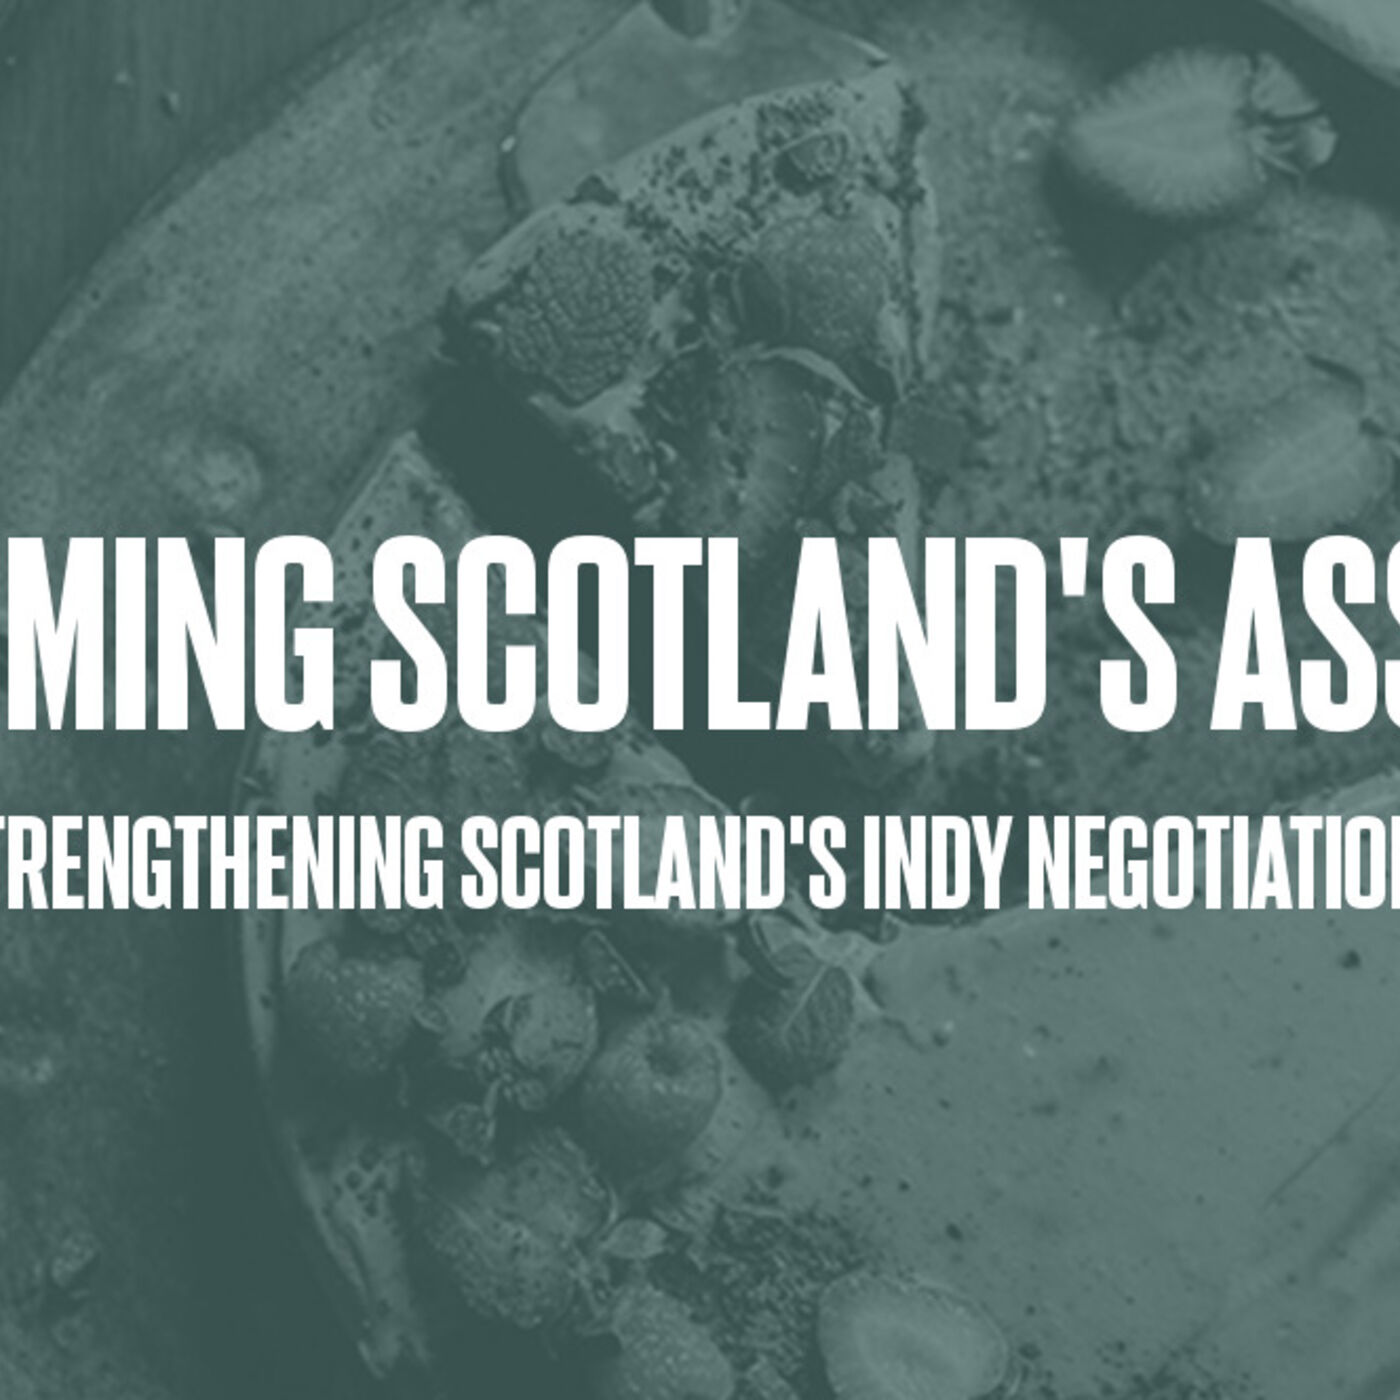 Episode #16 - Claiming Scotland's Assets